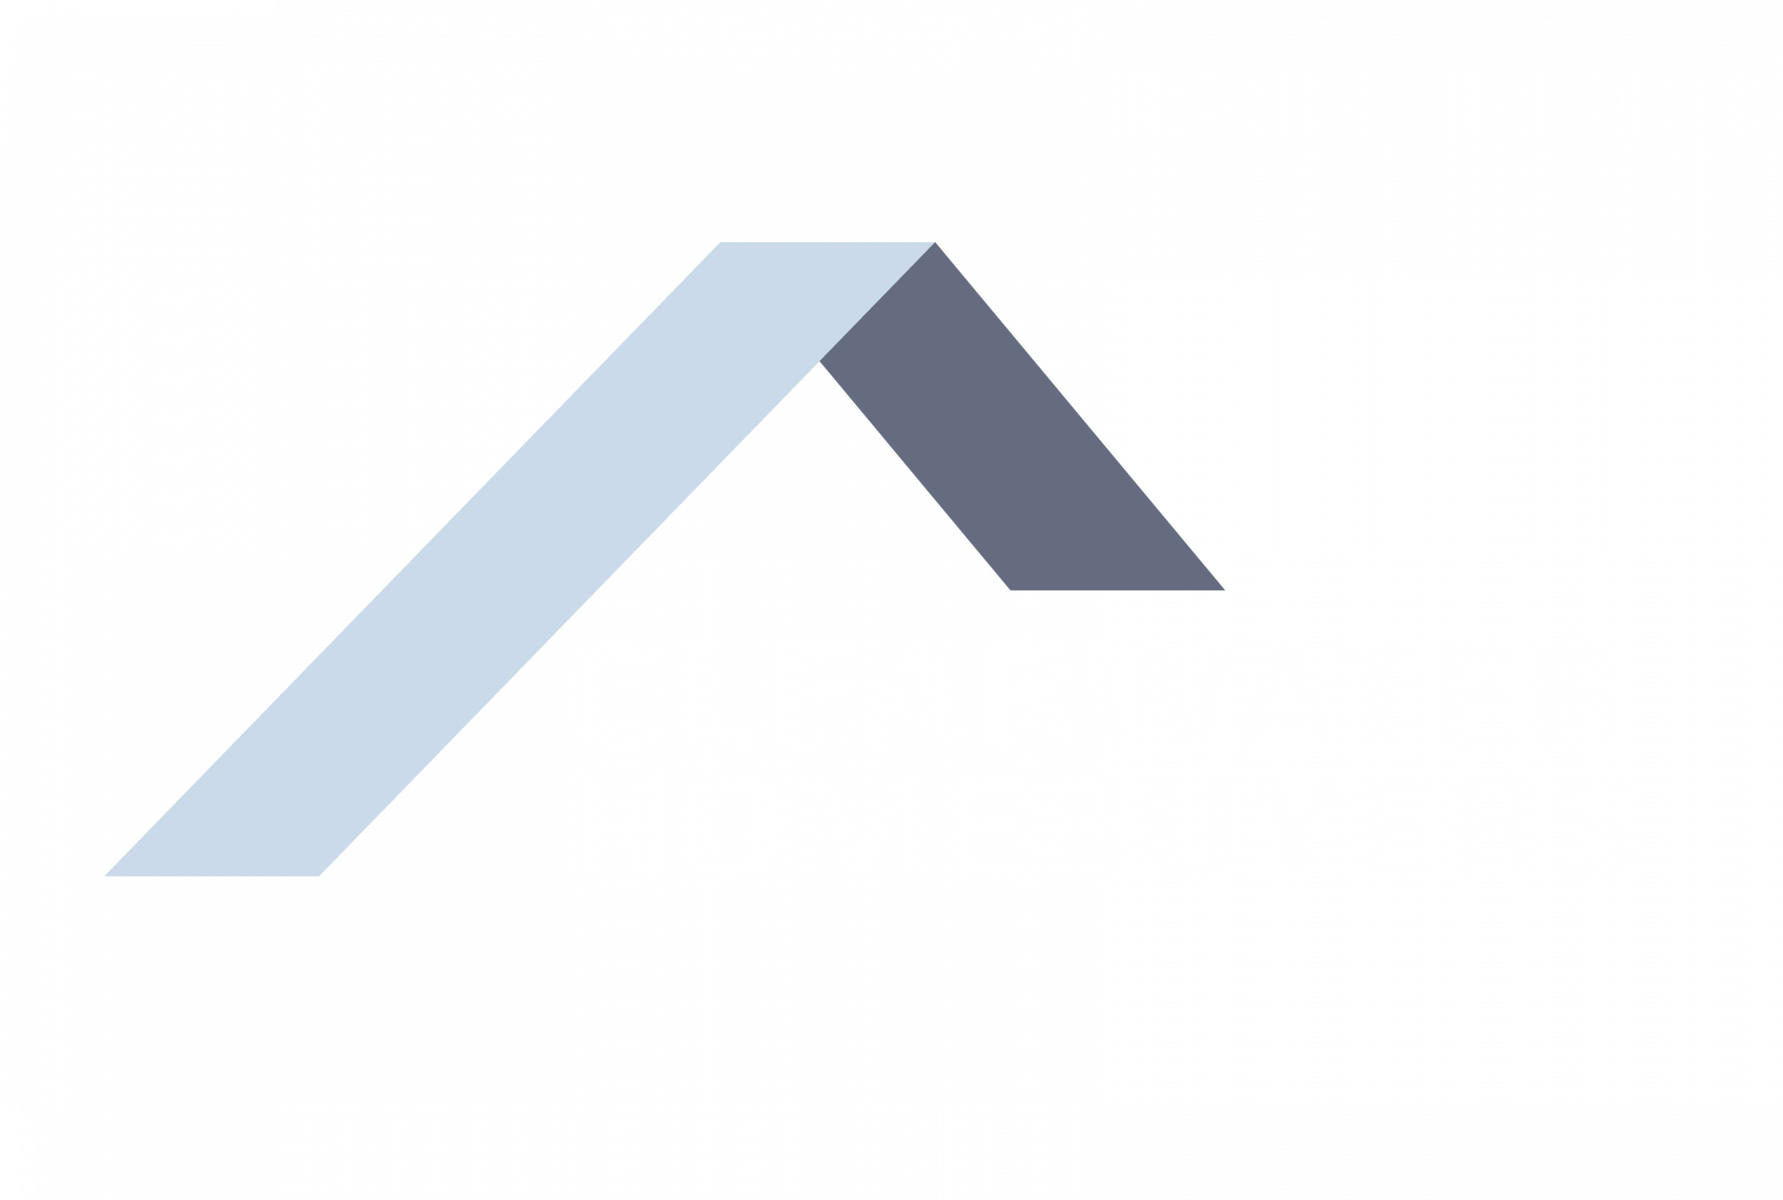 Clearwater Home Buyers   logo